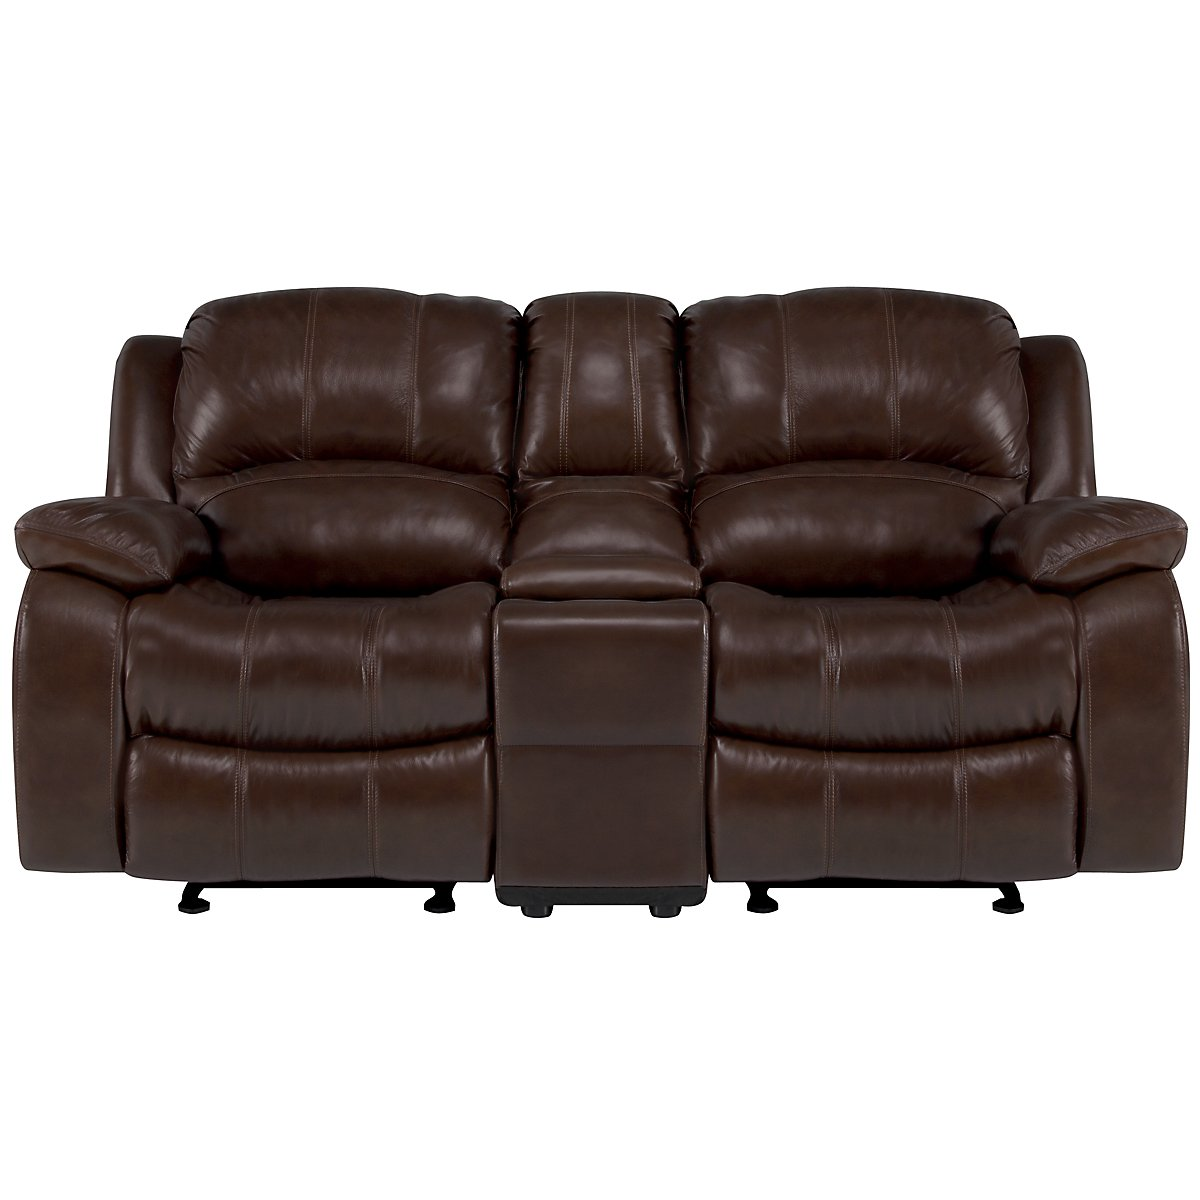 Tyler3 Md Brown Leather & Vinyl Reclining Console Loveseat